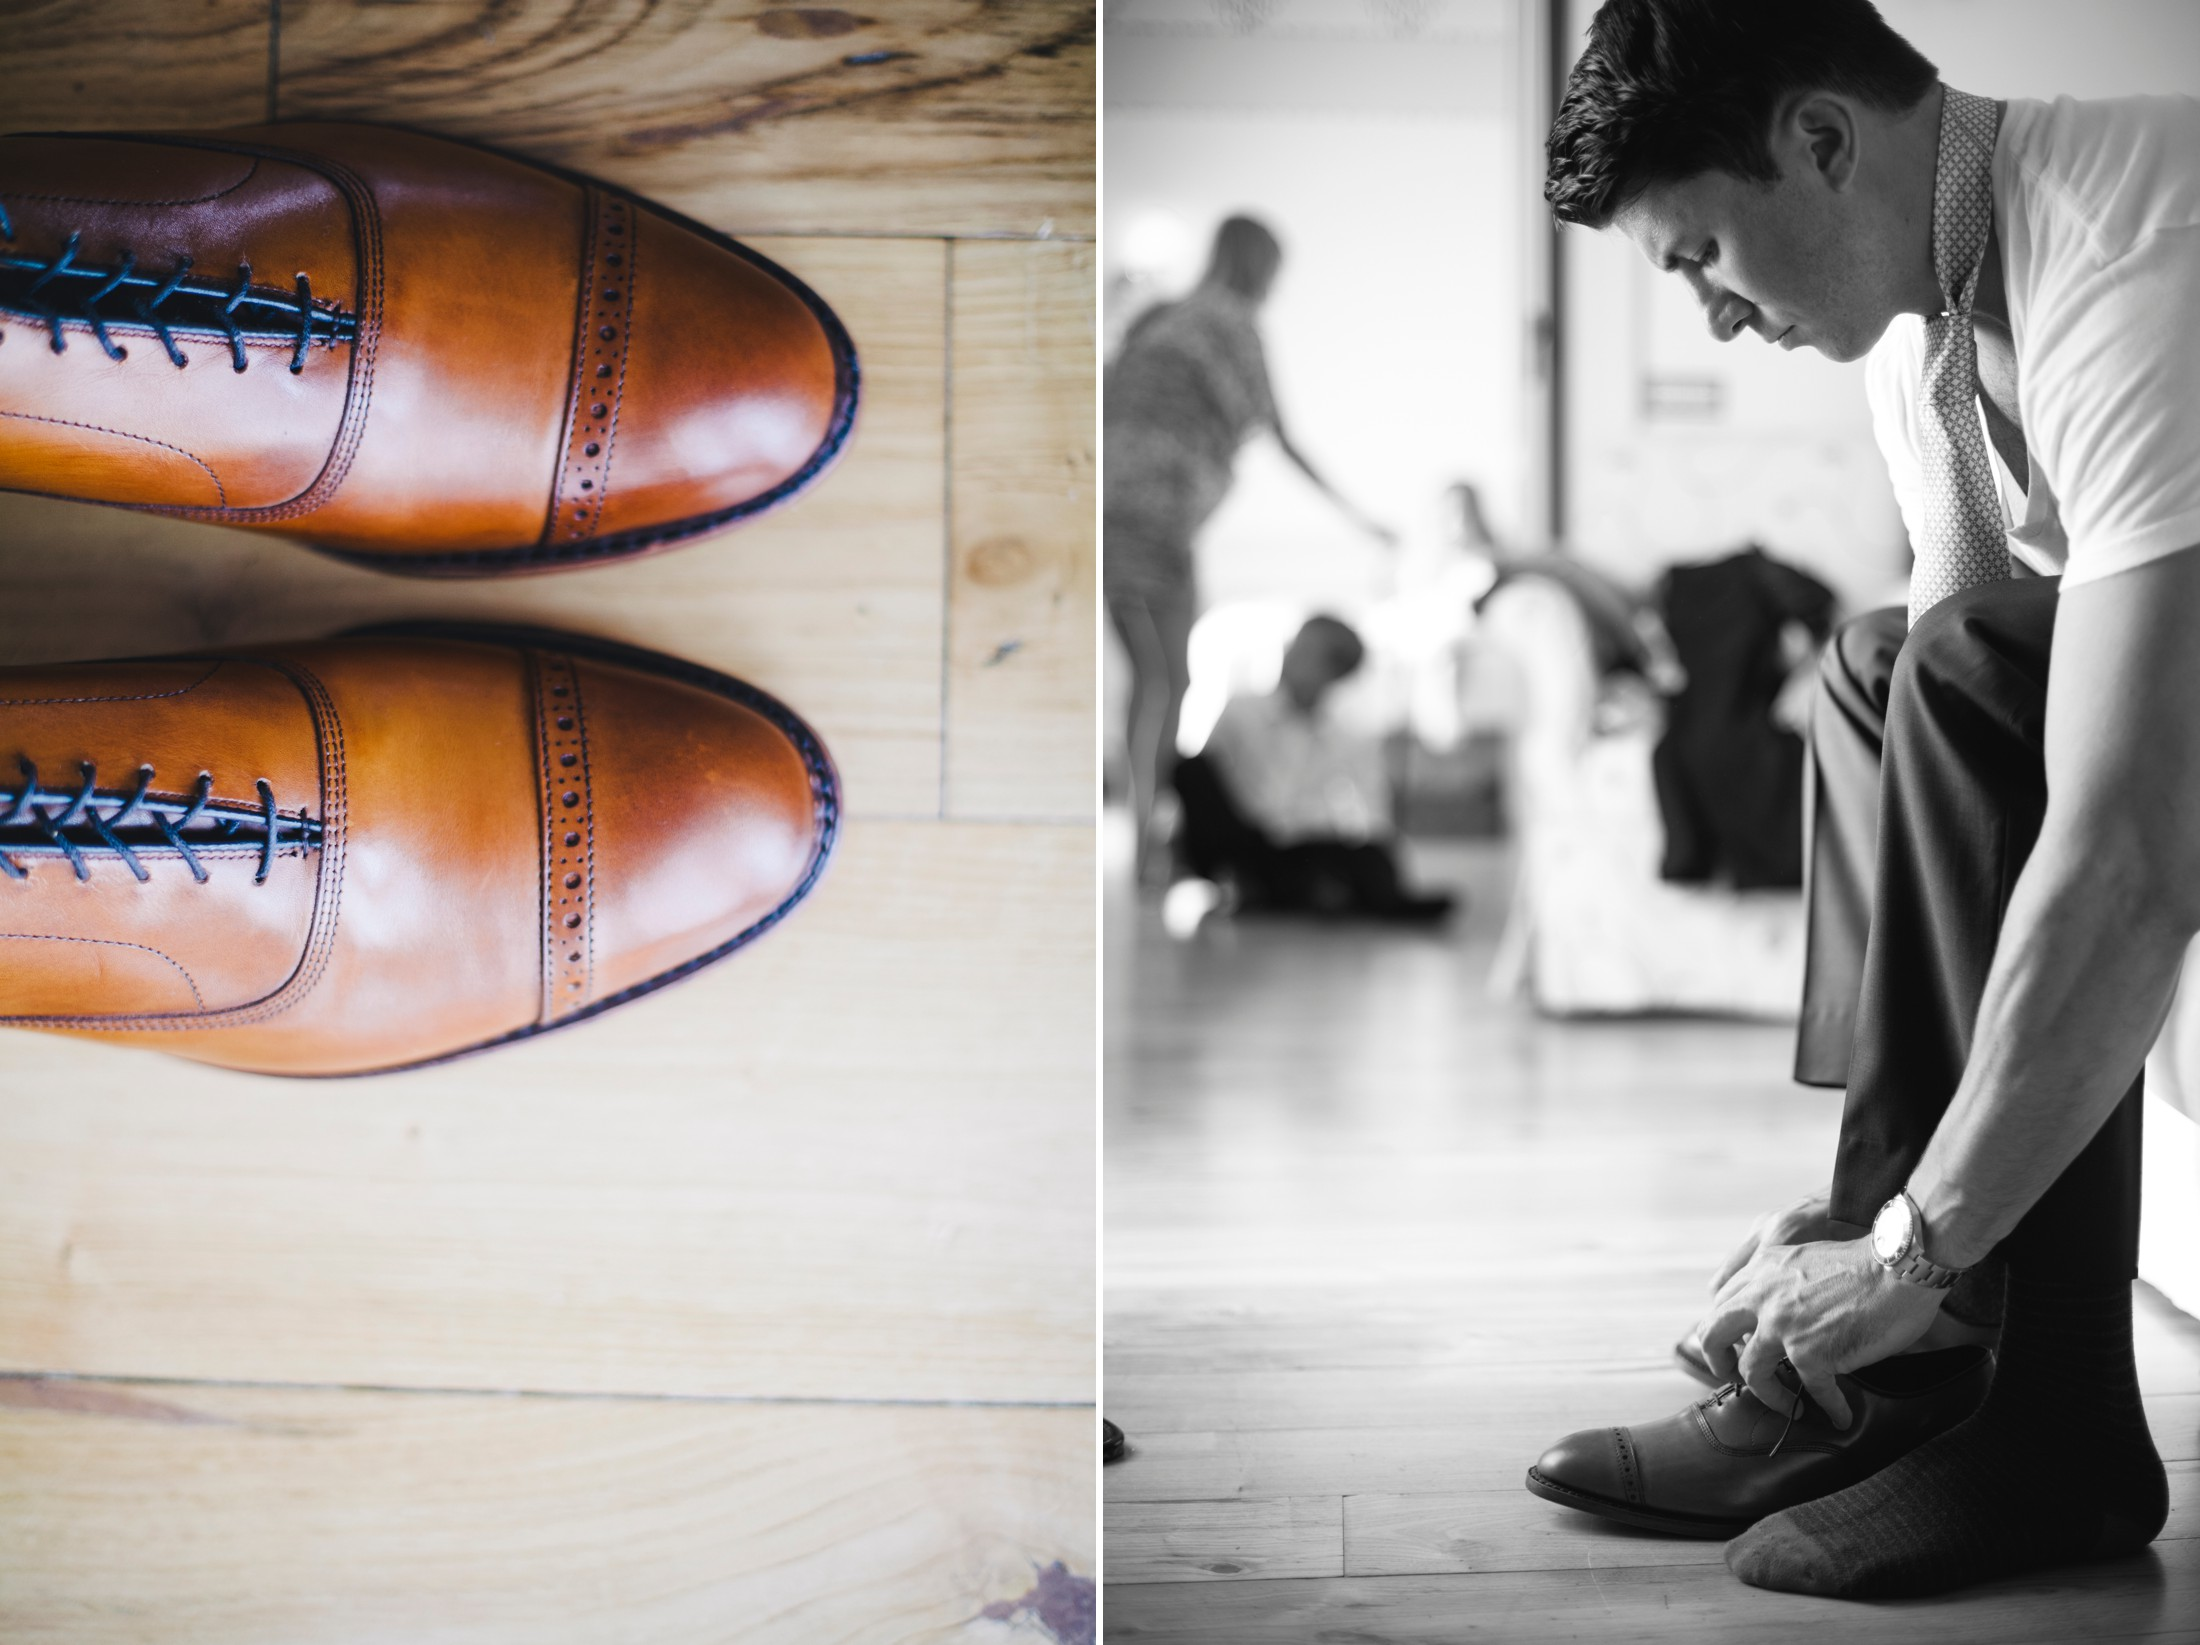 wedding in sorrento collage the groom's shoes and the groom getting ready